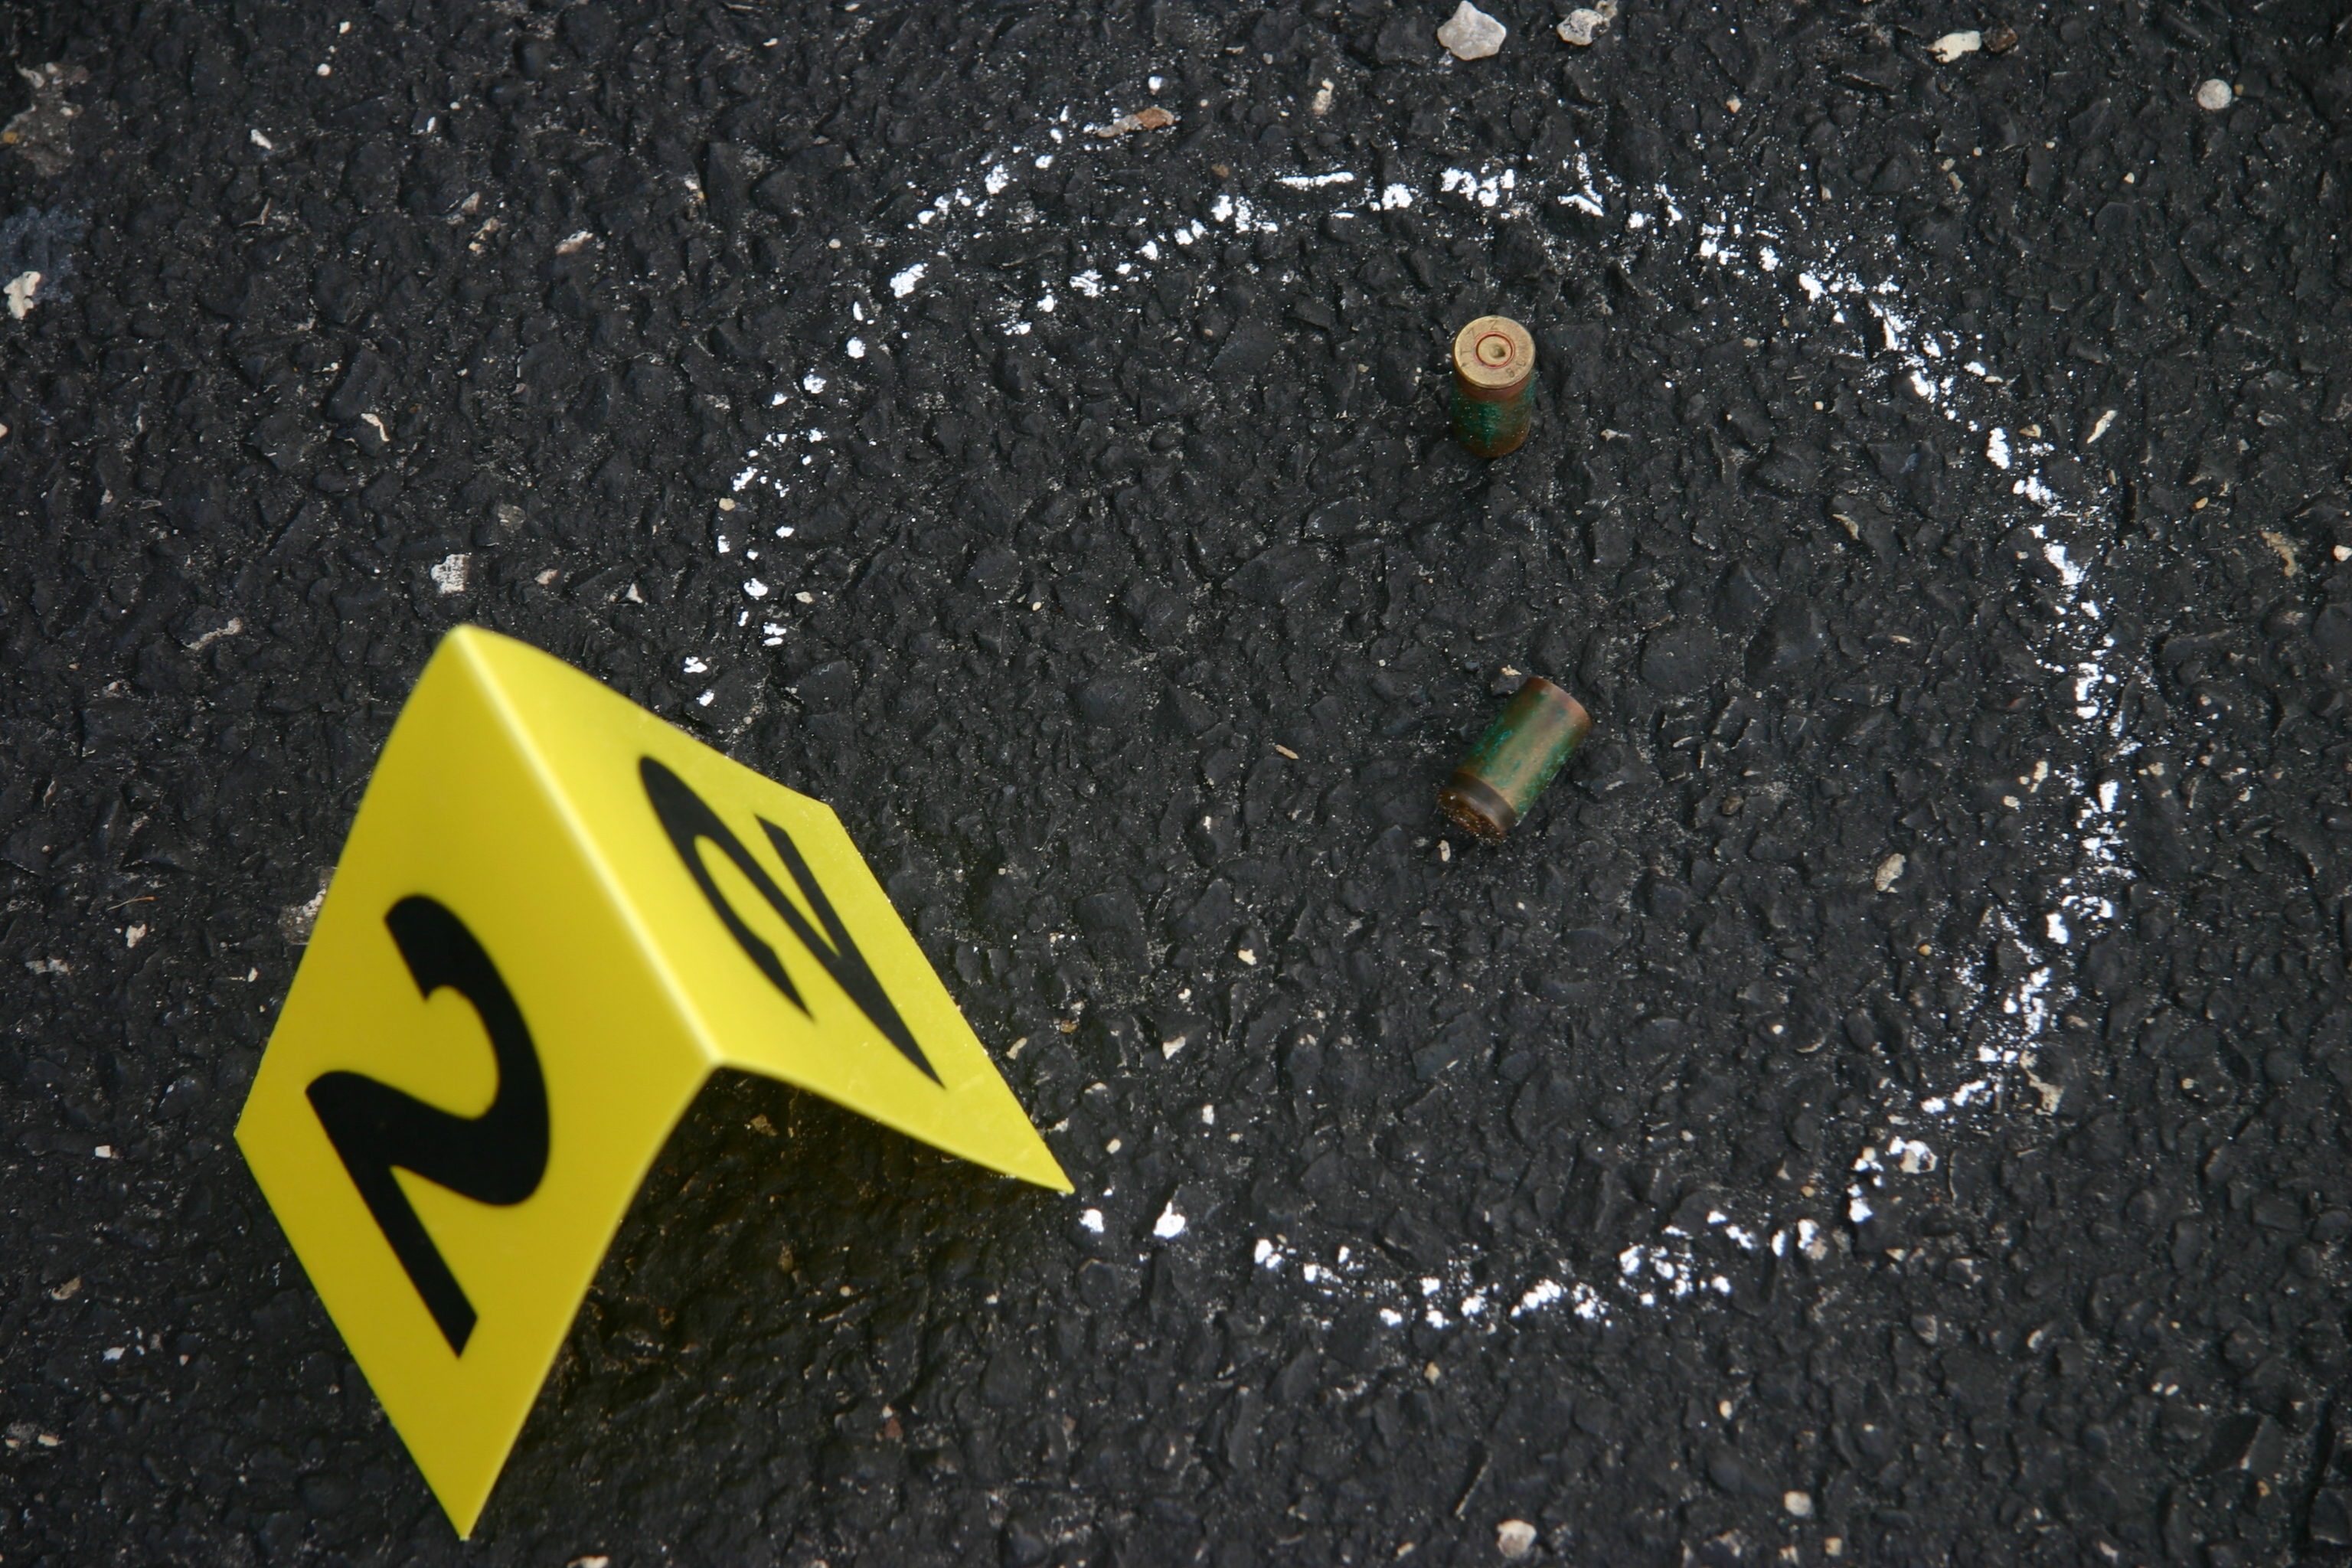 Image of a bullet in chalk outline